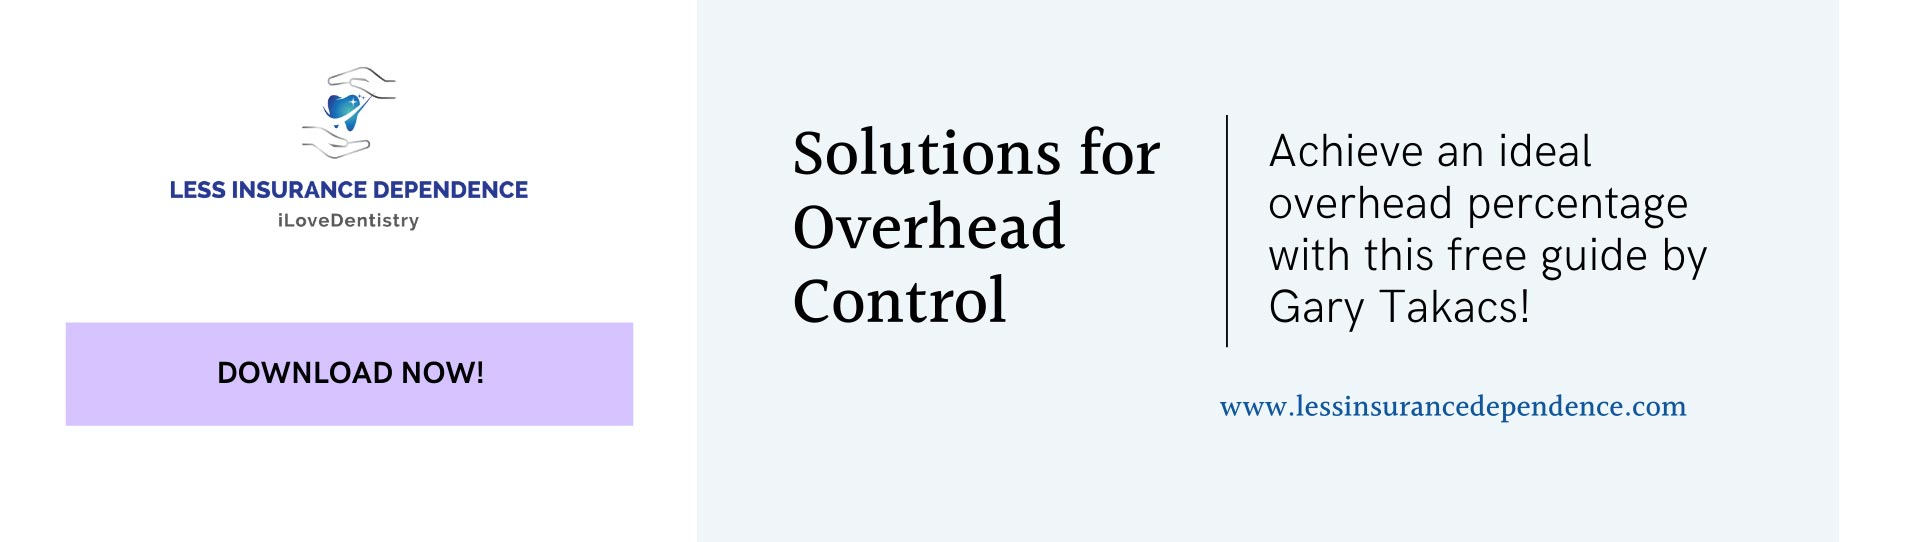 Solutions Overhead Control